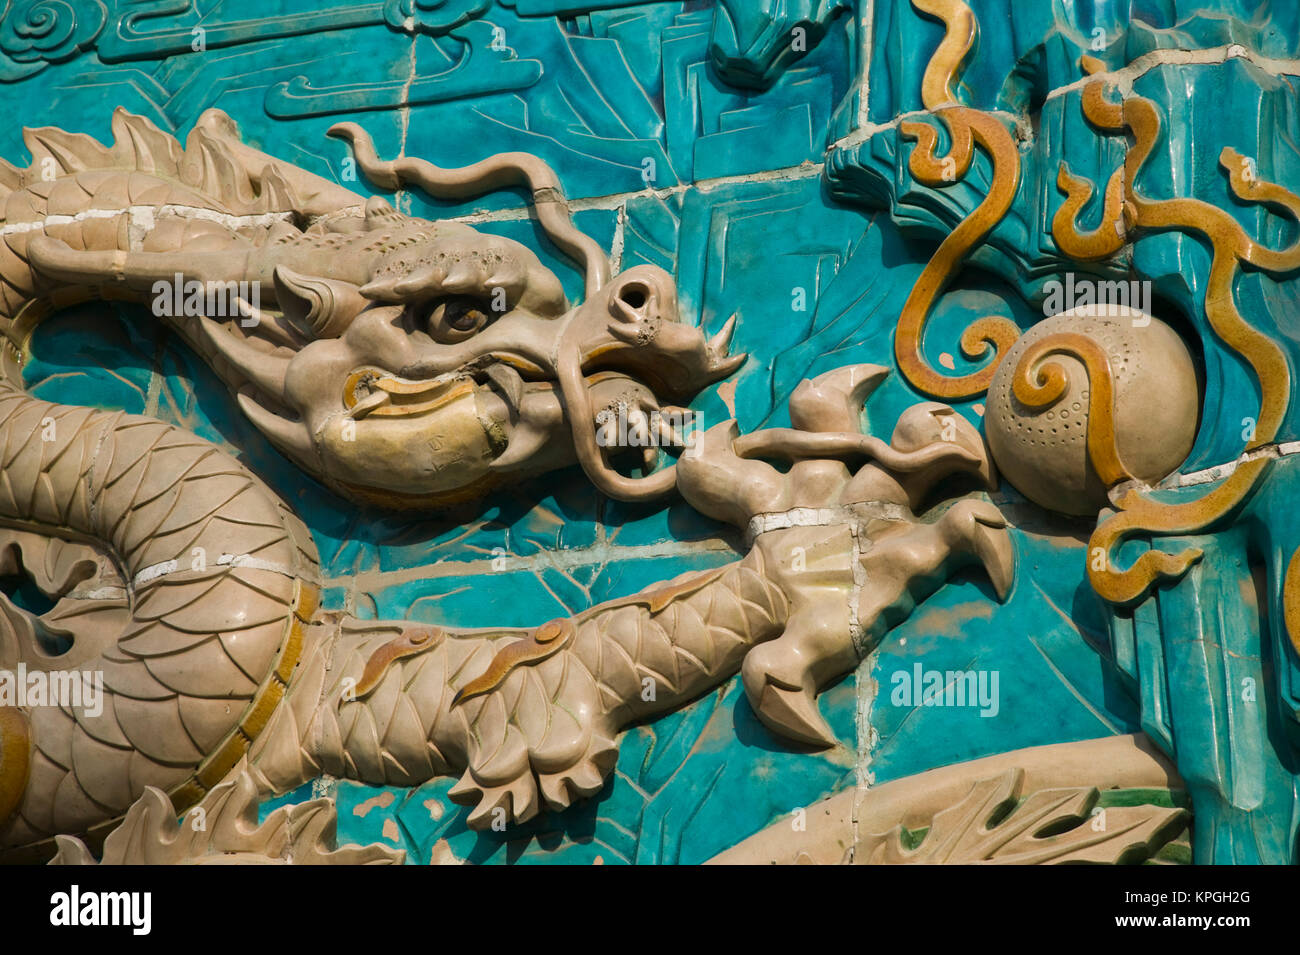 China, Beijing, Xicheng District. Behai Park- Detail of the Nine Dragon Screen. - Stock Image